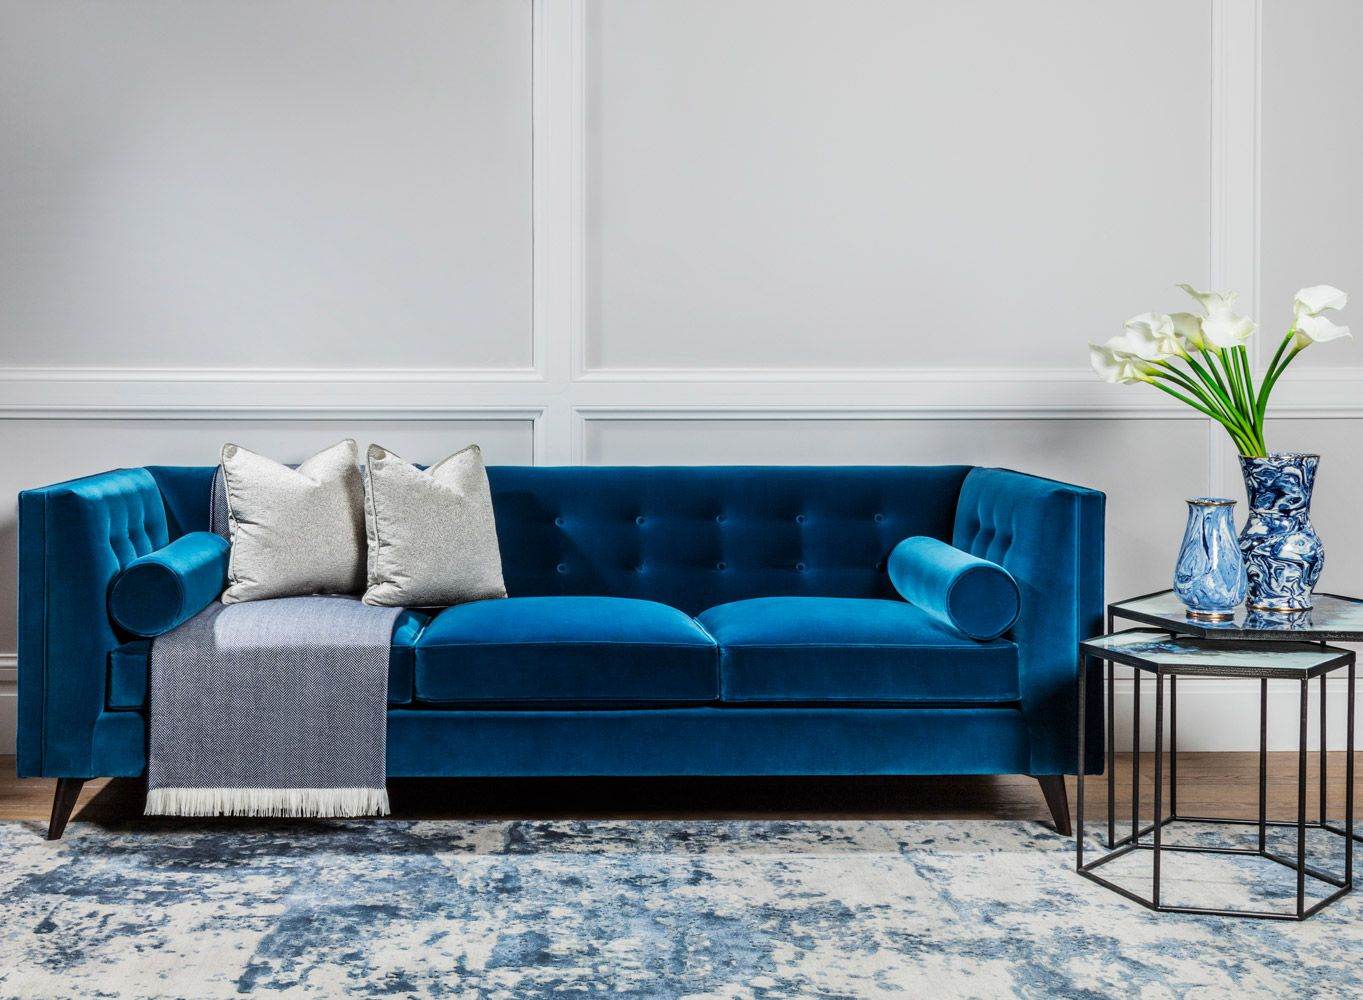 A Luxury Living Room Decor That Revamps The Blissful Blue White Colour Scheme With Timeless Luxury Living Room Decor Elegant Living Room Design Sofa Design